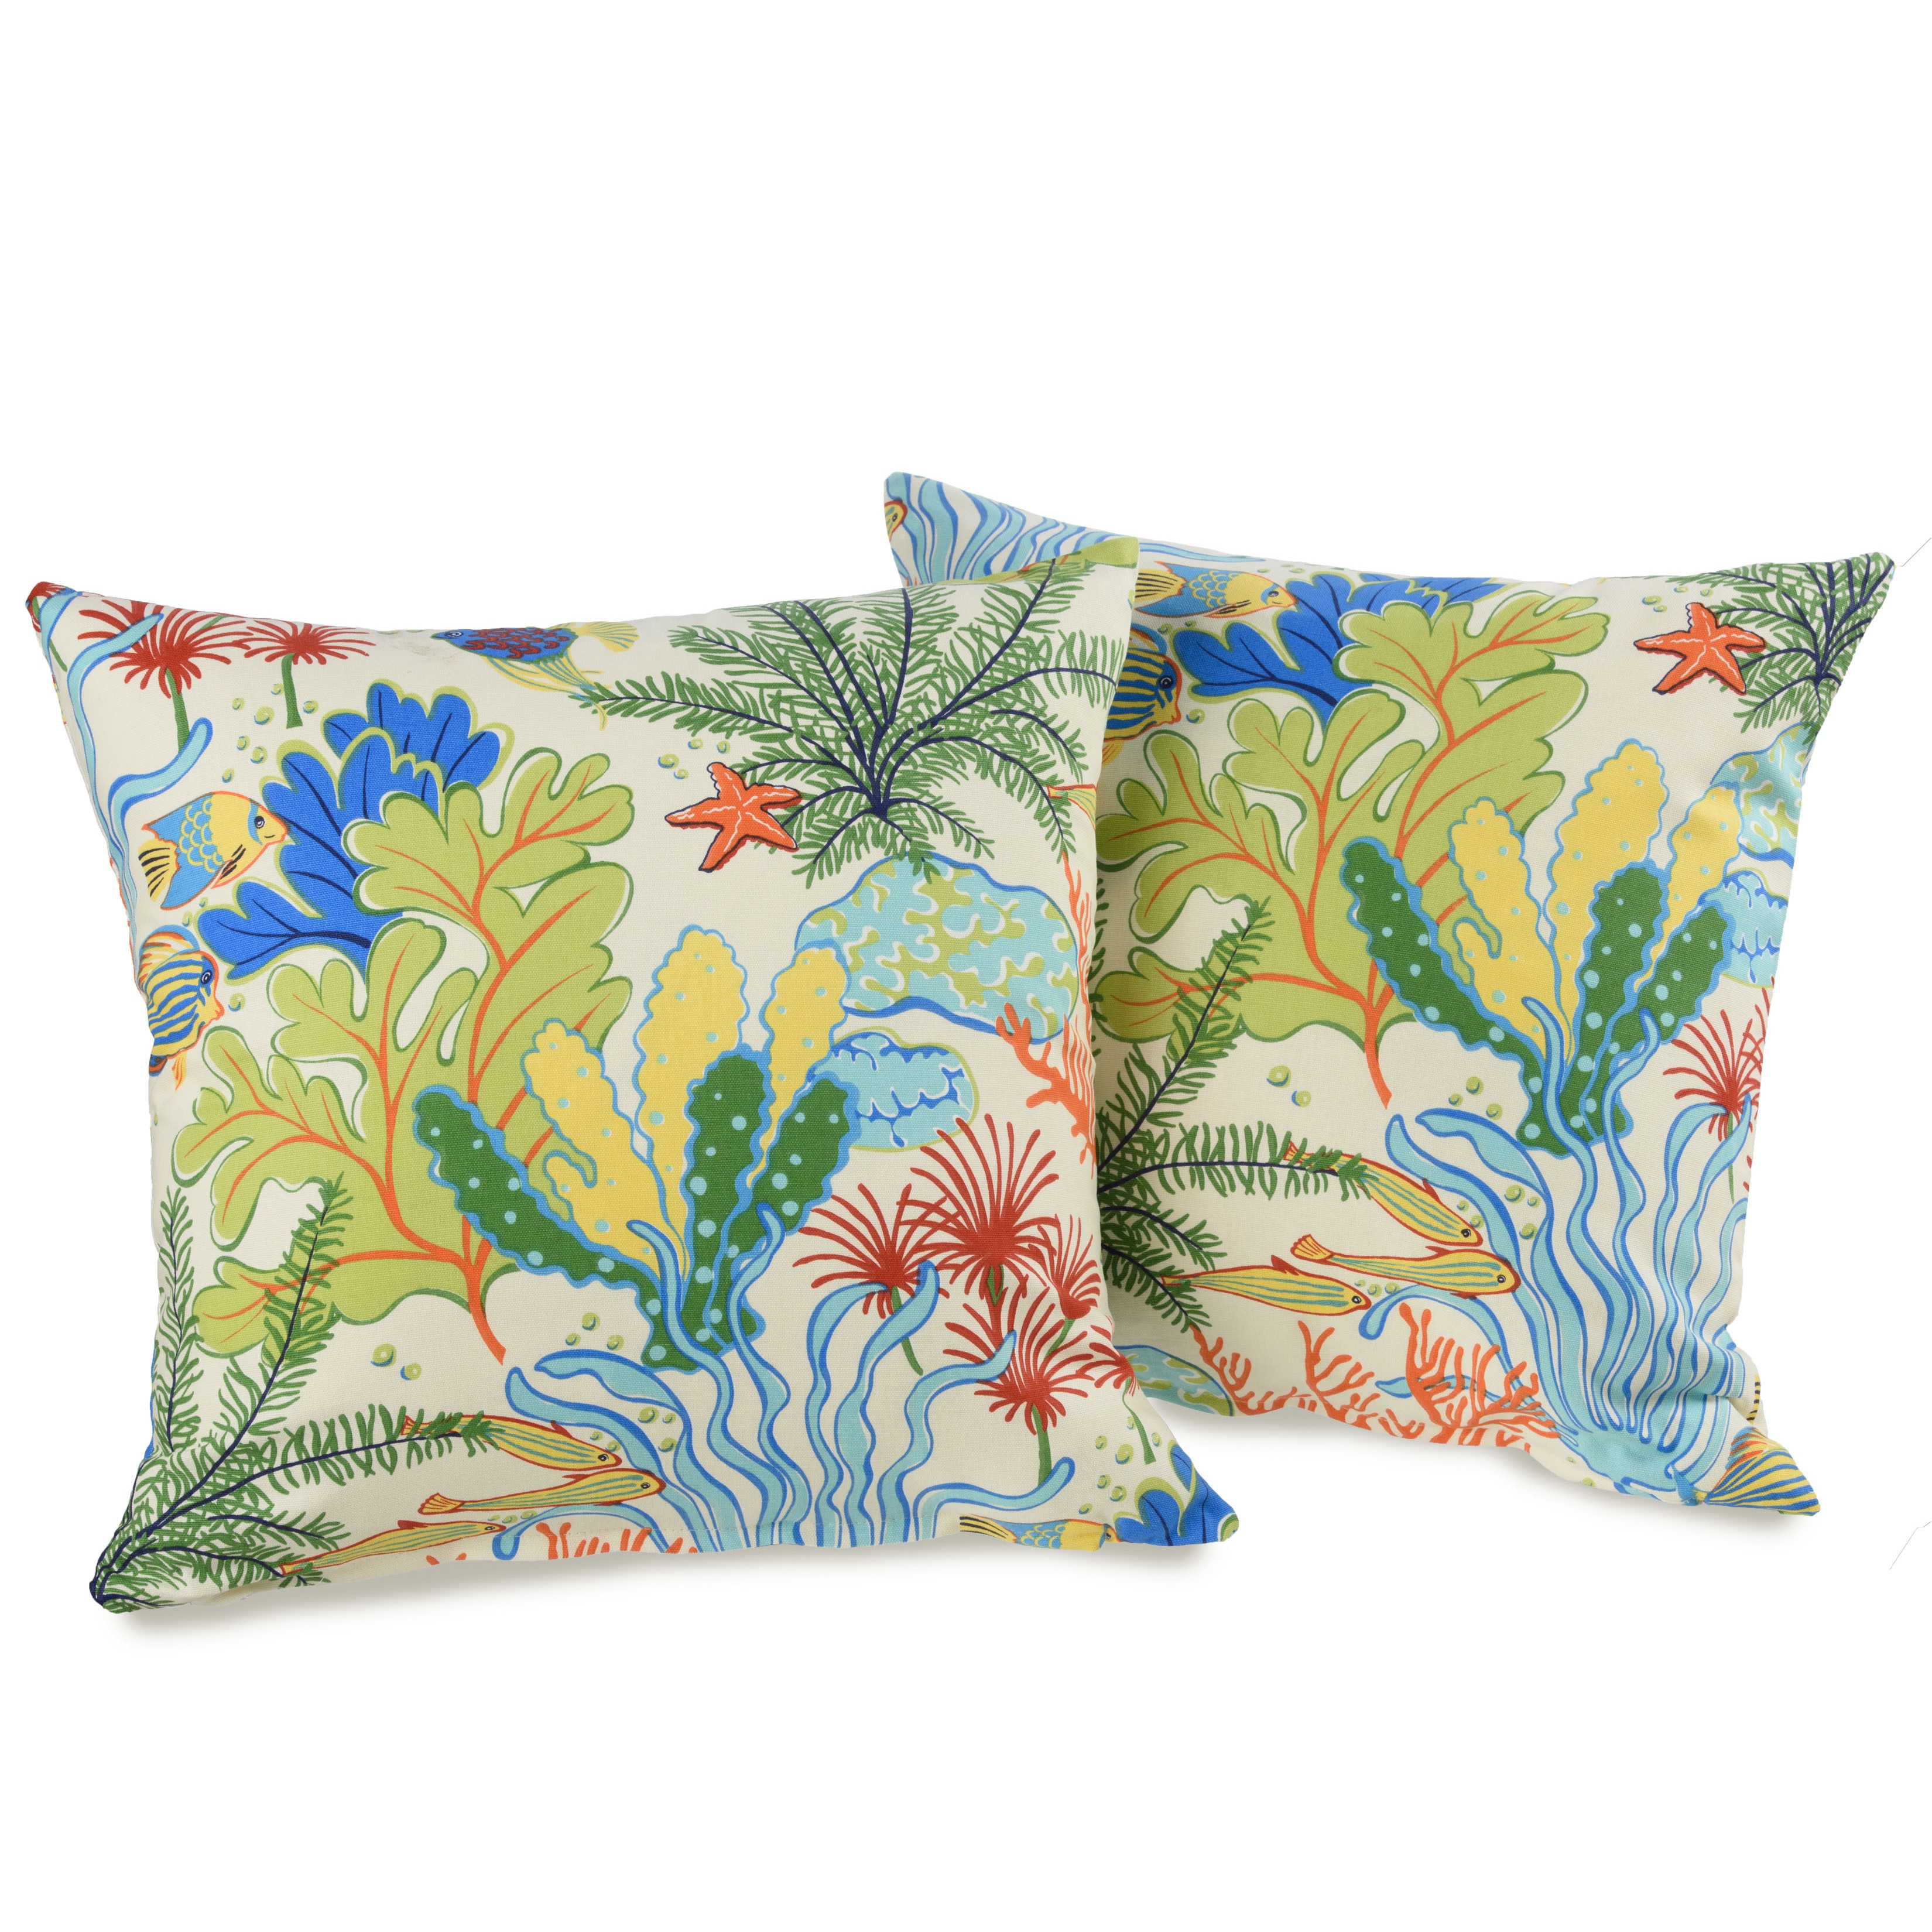 how to use decorative pillows shop island breeze 20 inch decorative throw pillows  set of 2 how to use throw pillows on a bed 20 inch decorative throw pillows